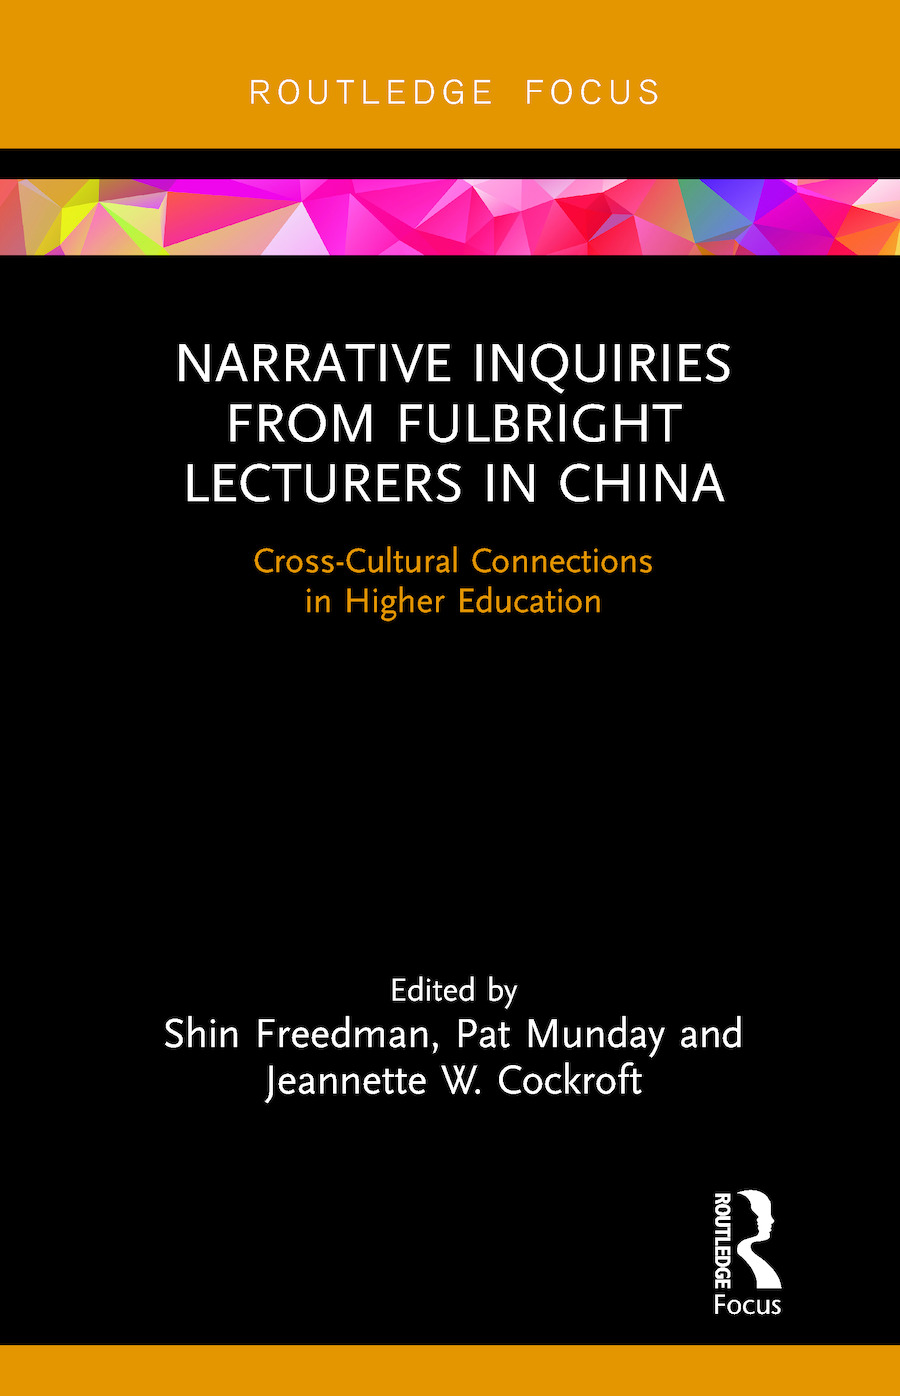 Narrative Inquiries from Fulbright Lecturers in China: Cross-Cultural Connections in Higher Education book cover